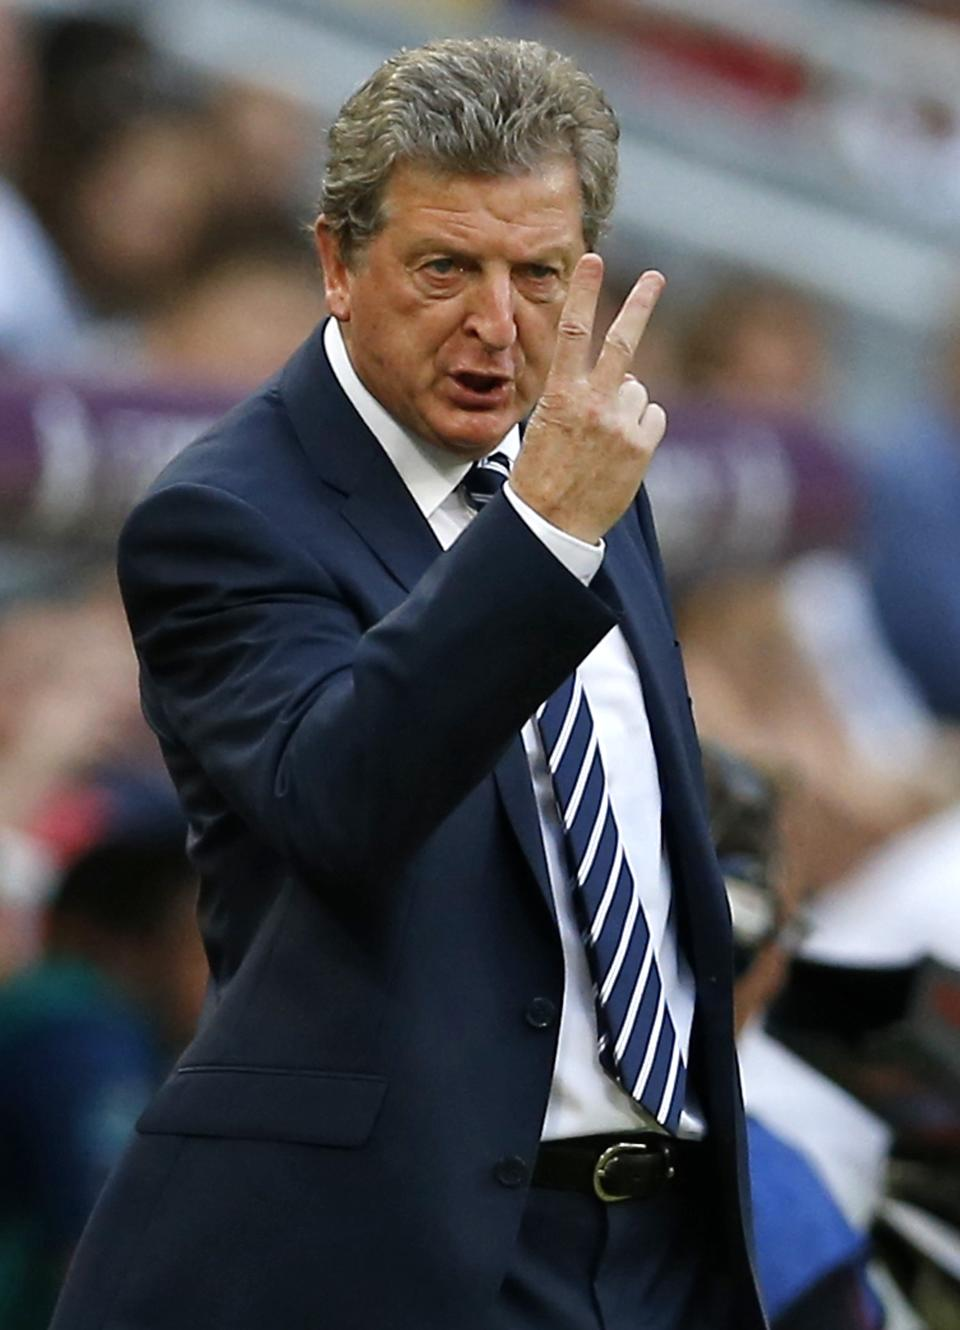 England manager Roy Hodgson shouts indications to his players during the Euro 2012 soccer championship Group D match between France and England in Donetsk, Ukraine, Monday, June 11, 2012. (AP Photo/Kirsty Wigglesworth)